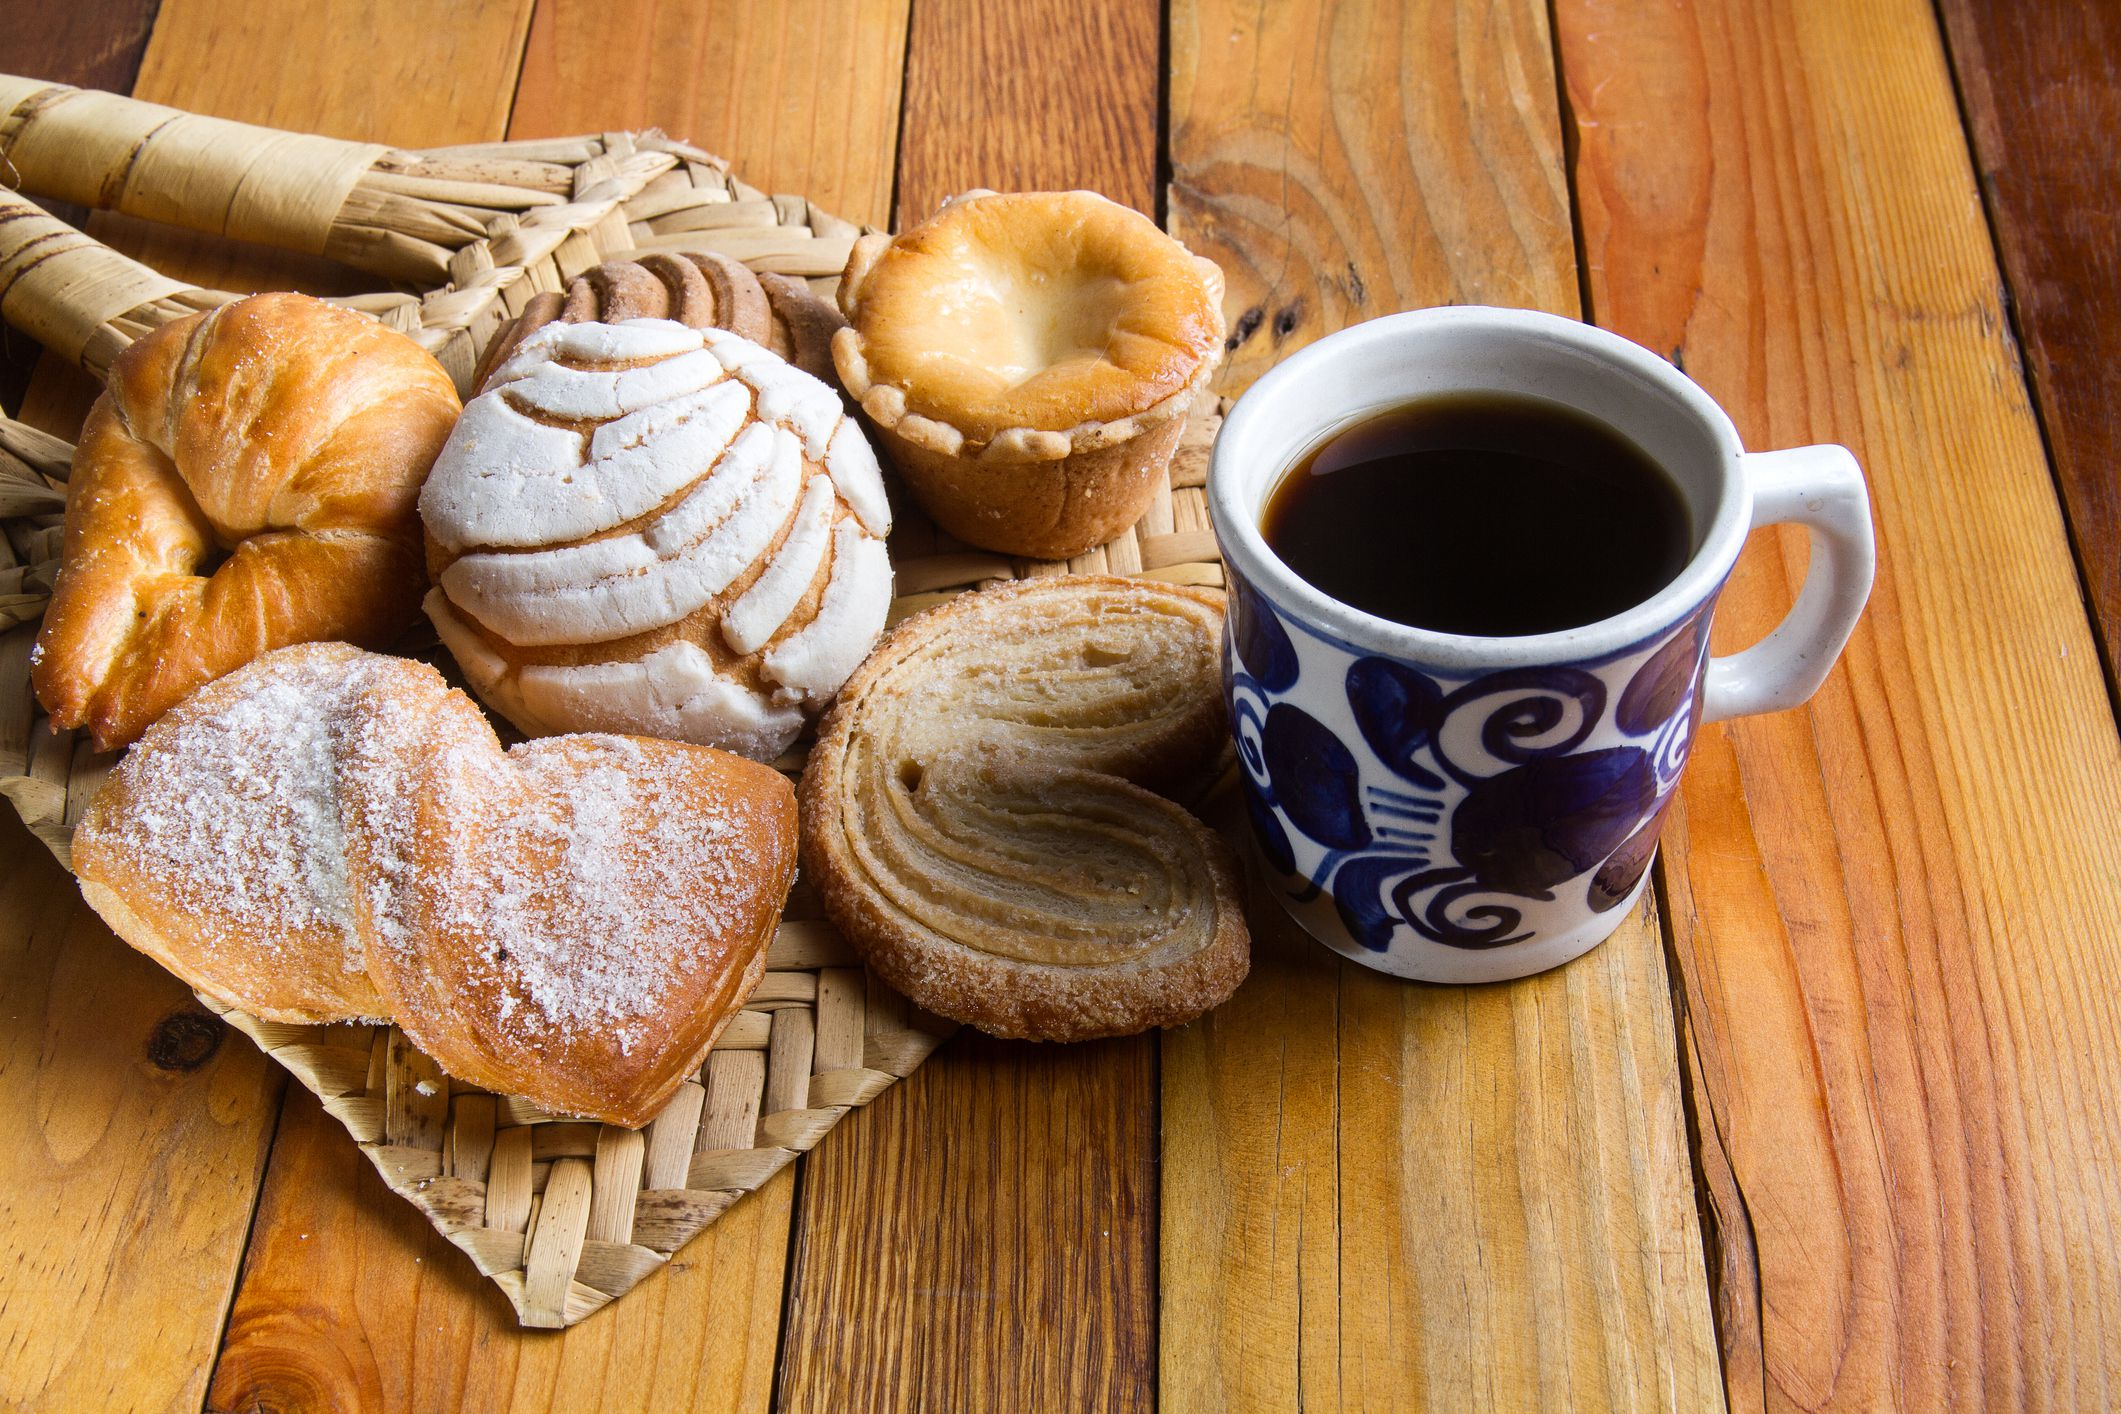 North Country Auto >> 9 Breakfast Foods You Can't Miss in Mexico